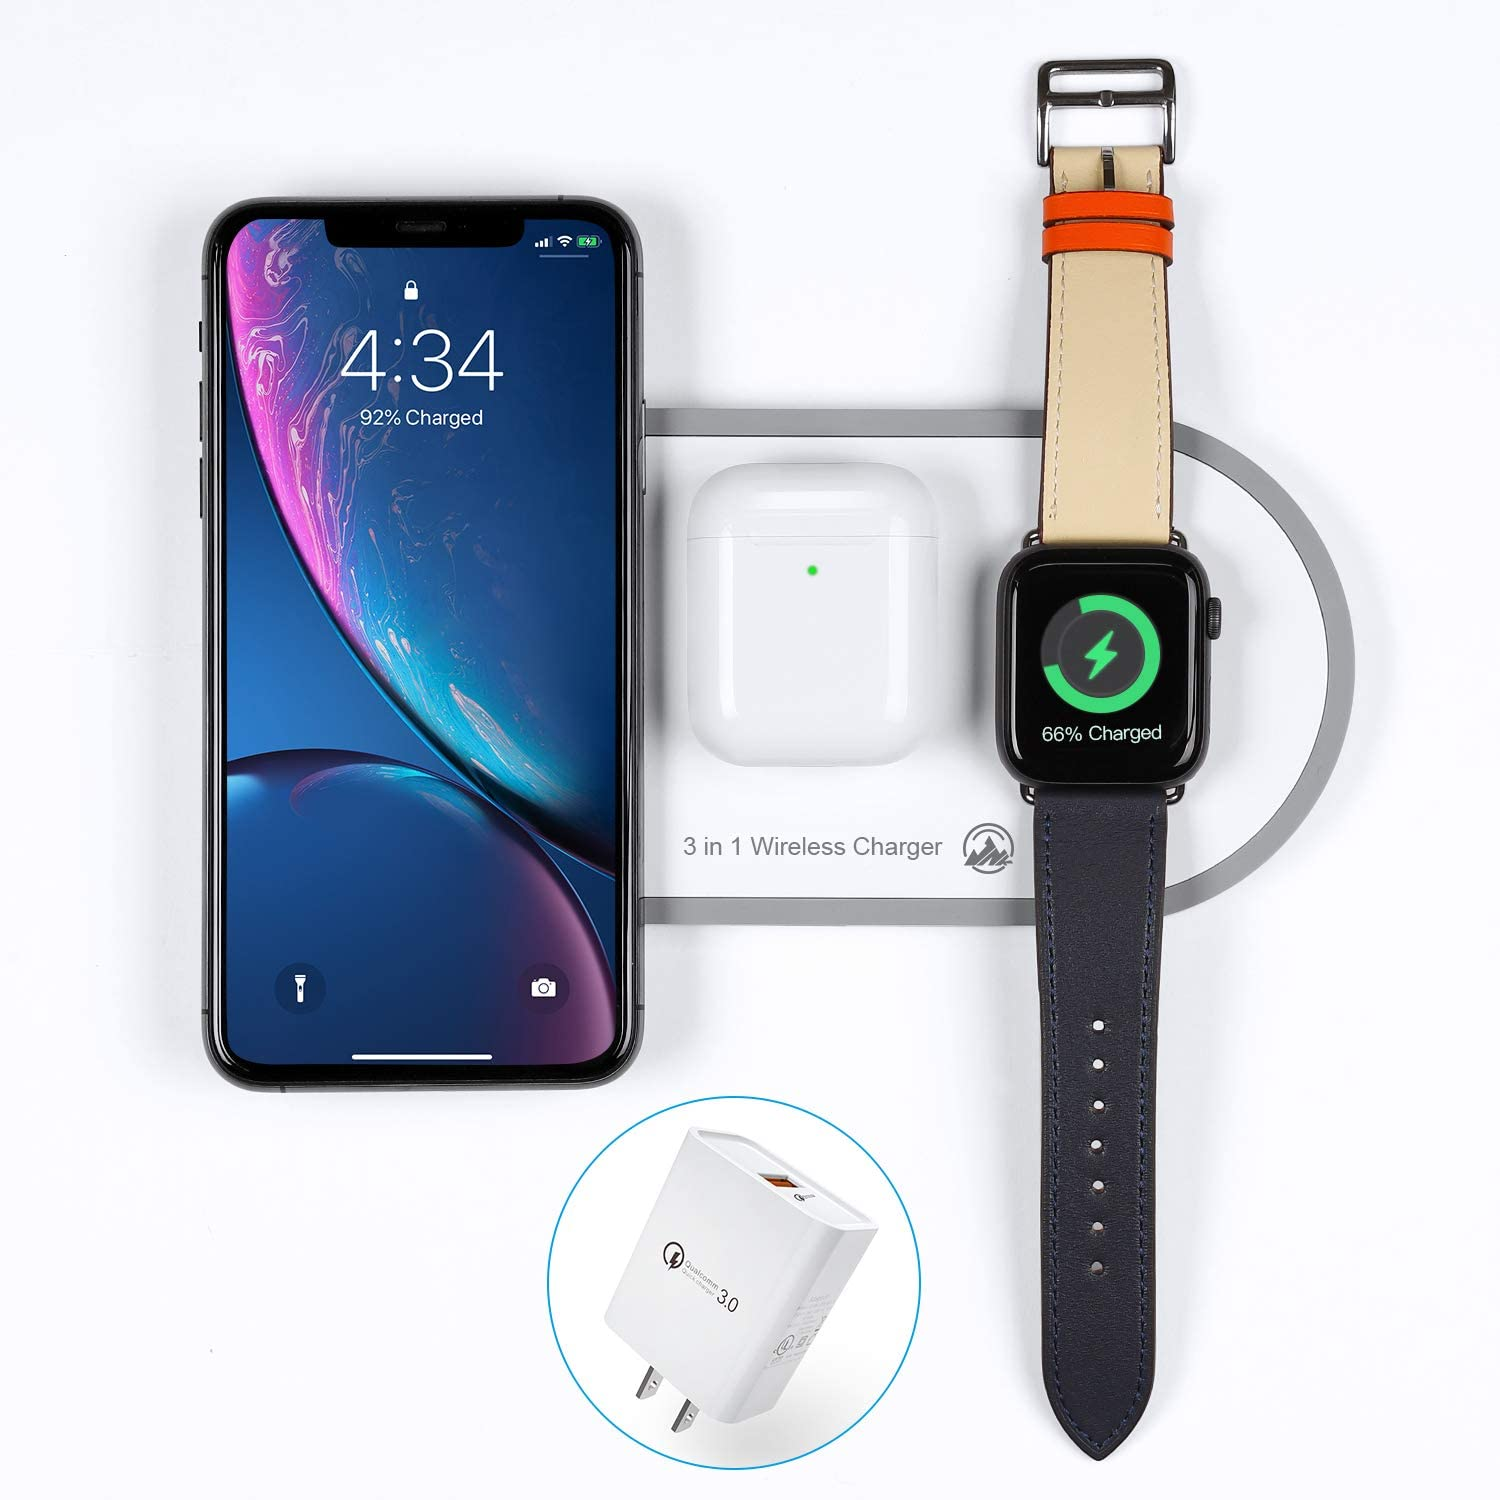 2020 Upgraded Wireless Charger 3 in 1 Wireless Charging Pad Fast Apple Charge Dock Station for Air Pods Pro 1 2 iWatch Series1 2 3 4 5 iPhone 8 8 Plus X Xr Xs Max 11 11 Pro Max with QC 3.0 Adapter